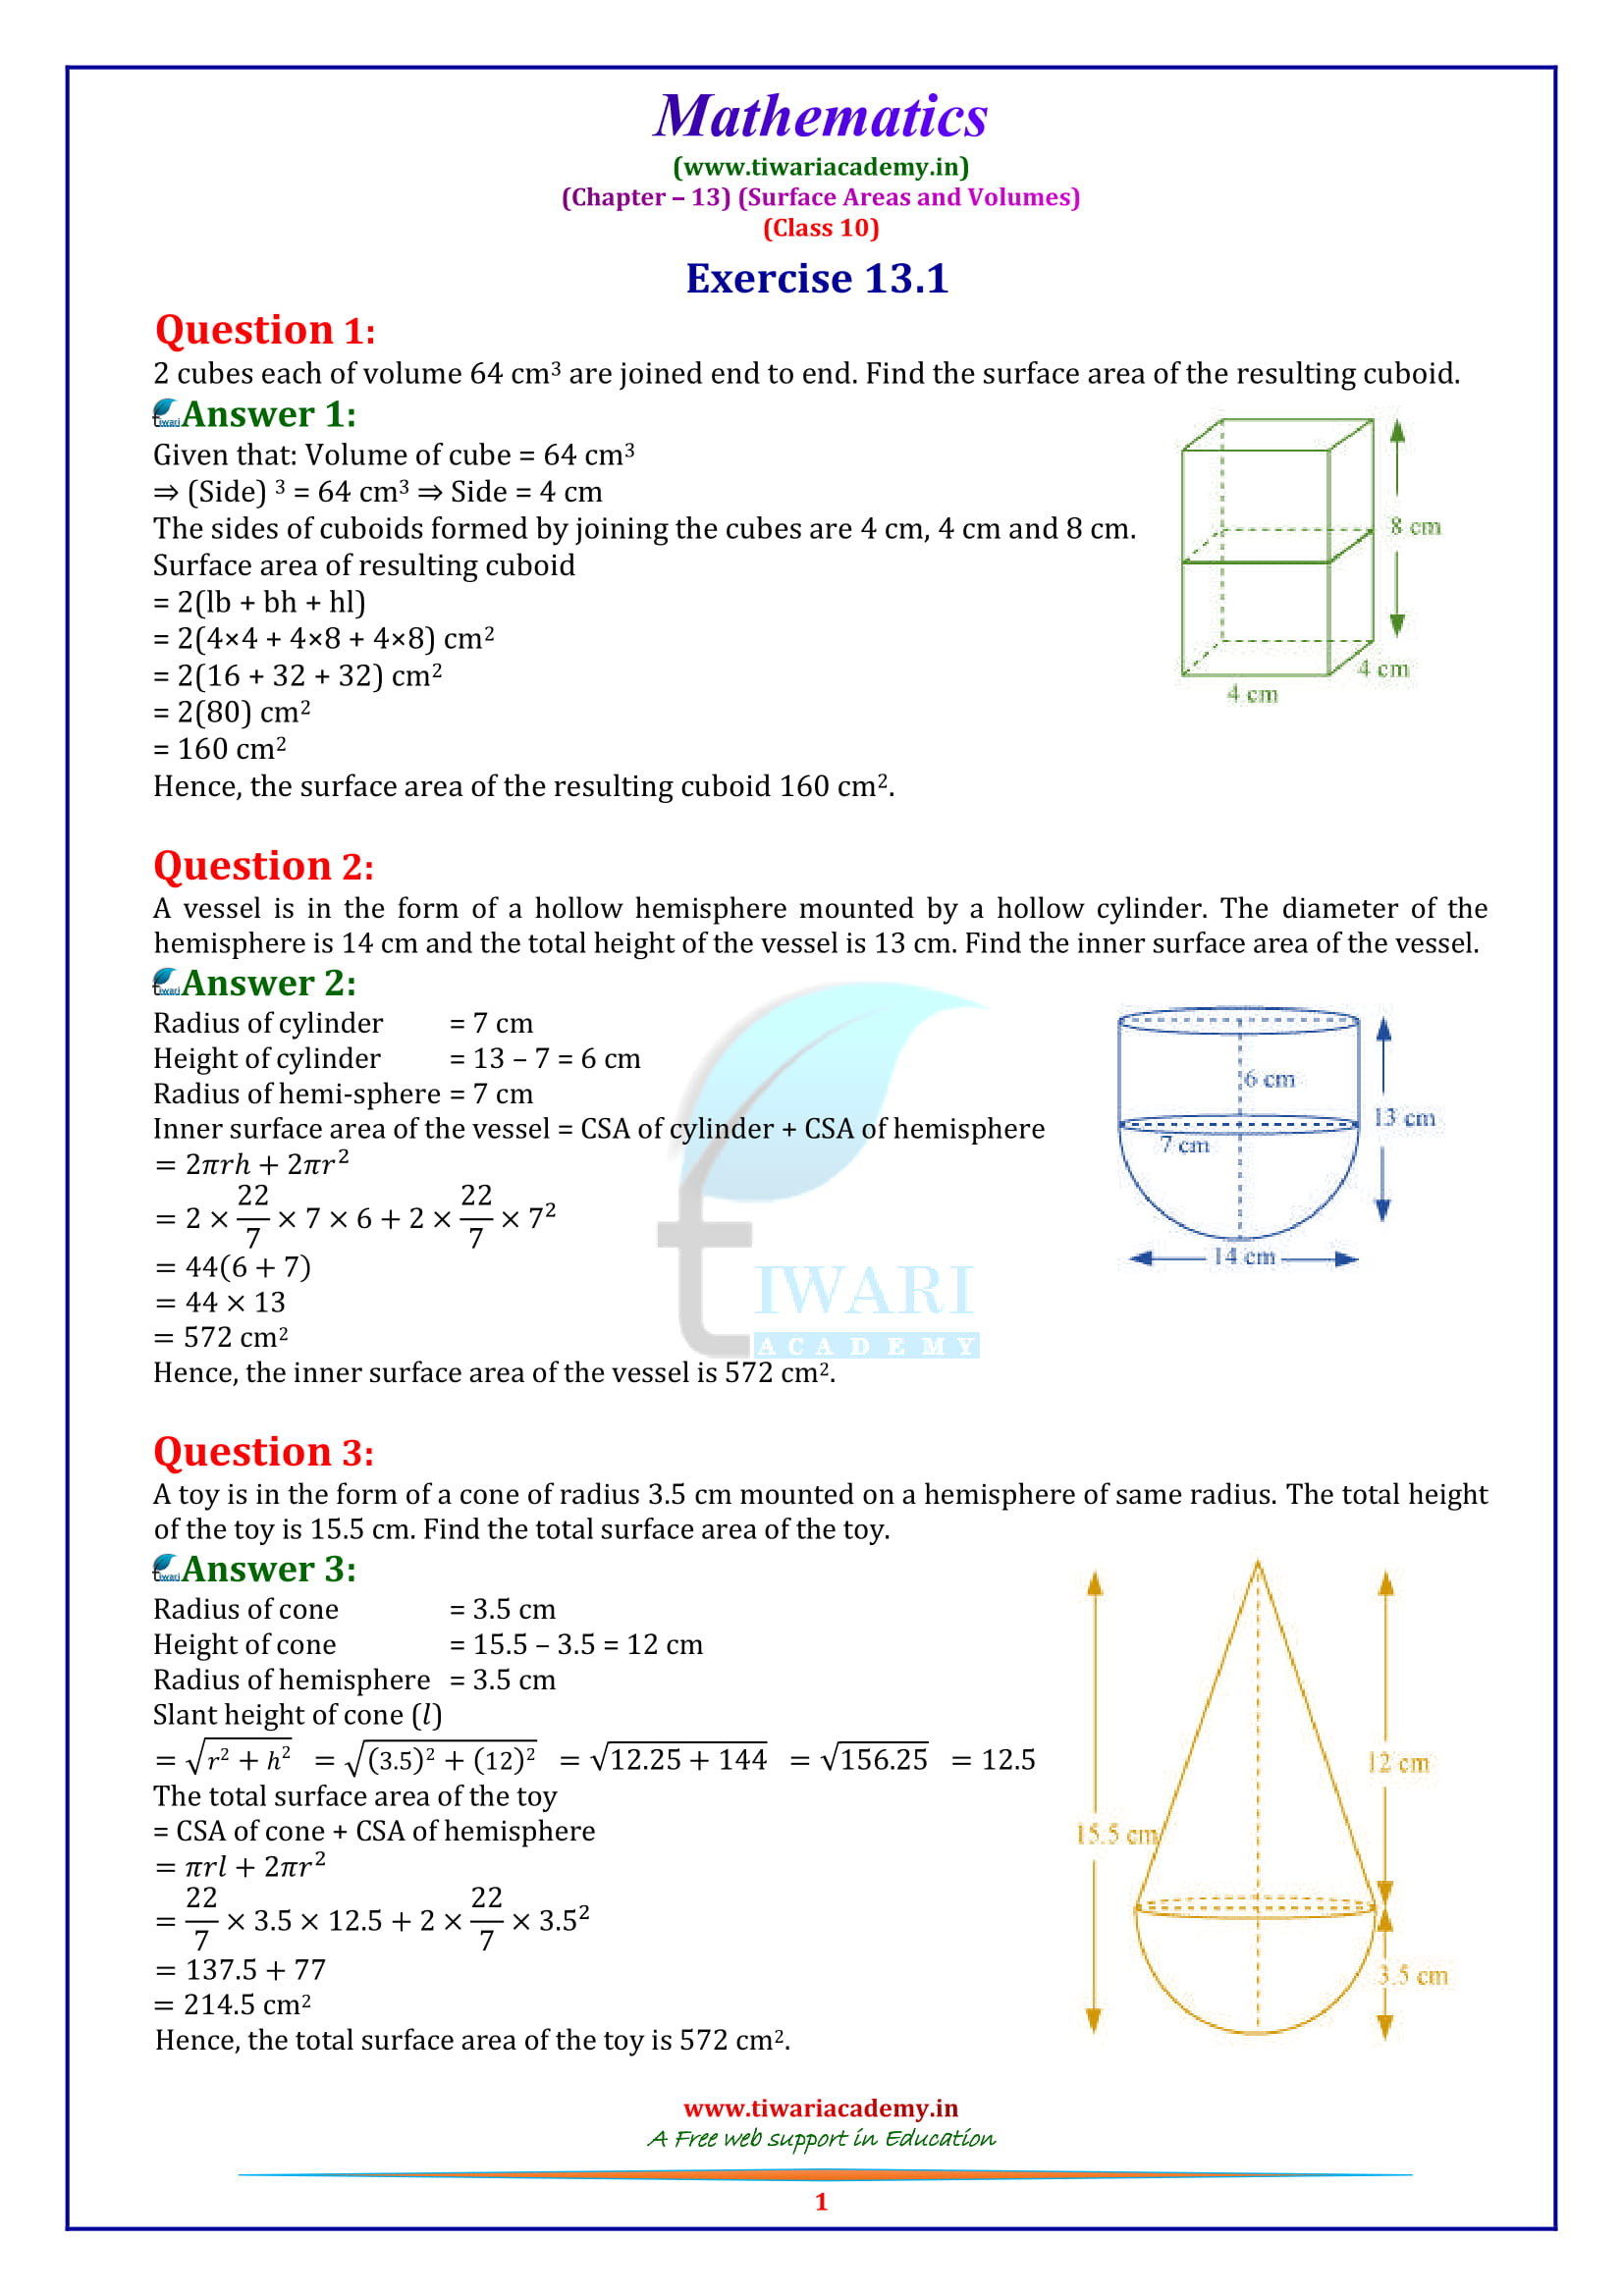 NCERT Solutions for Class 10 Maths Chapter 12 Exercise 13.1